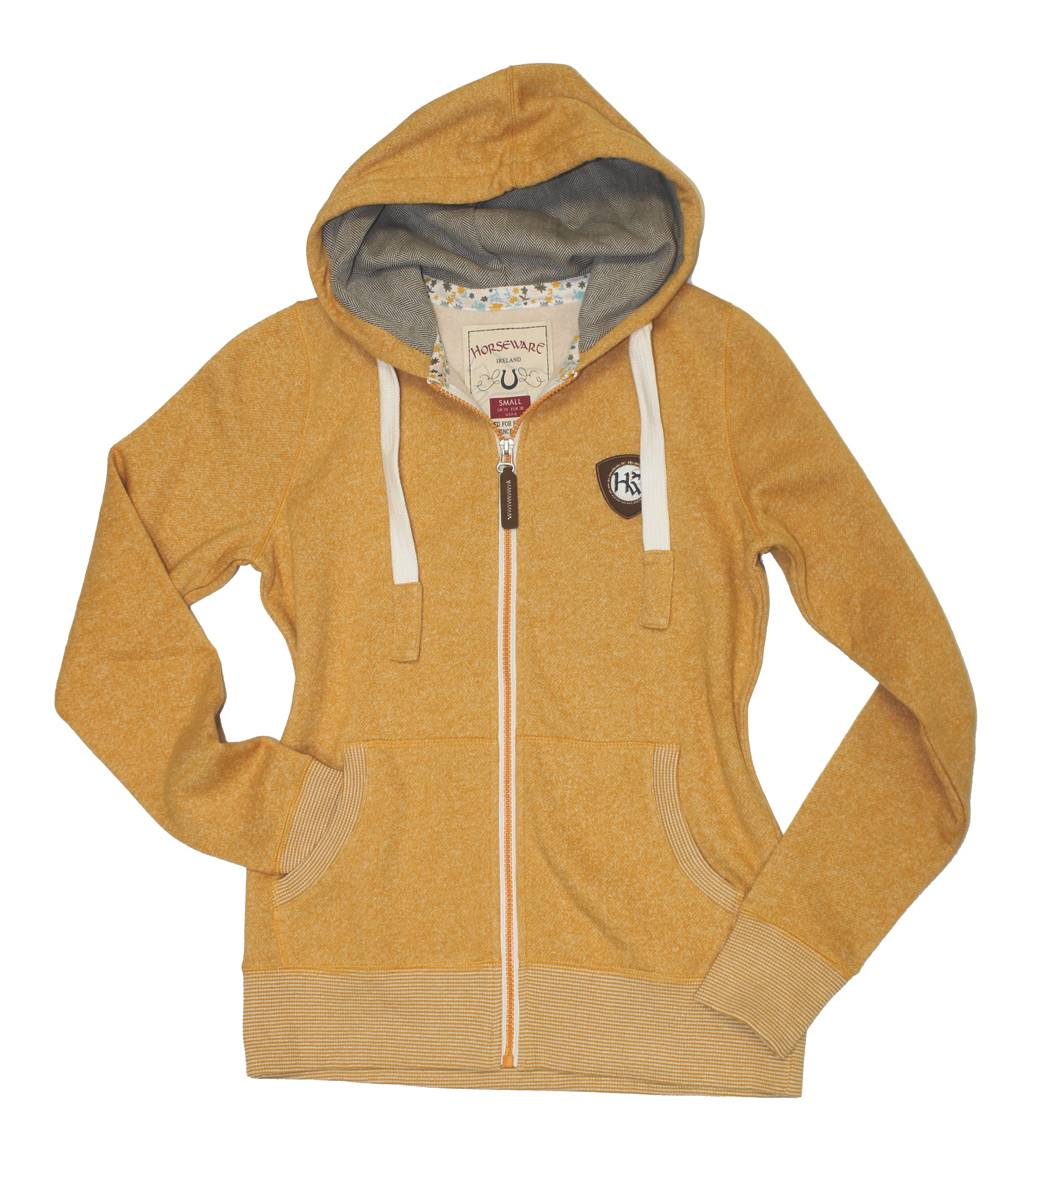 Horseware Ladies' Herringbone Hoody